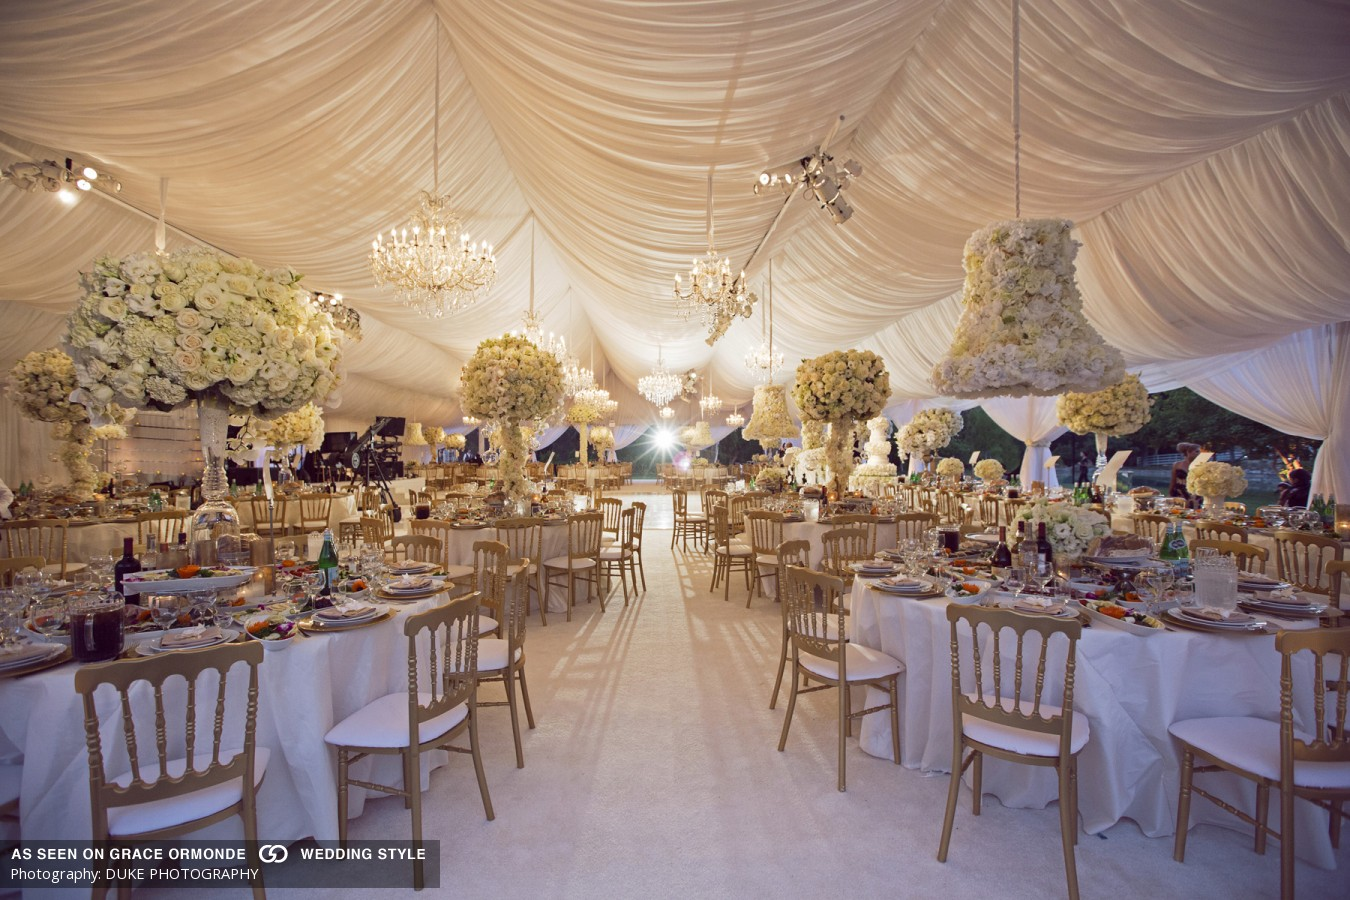 wedding outdoor fancy lavish luxurious weddings events comments leave here dinner